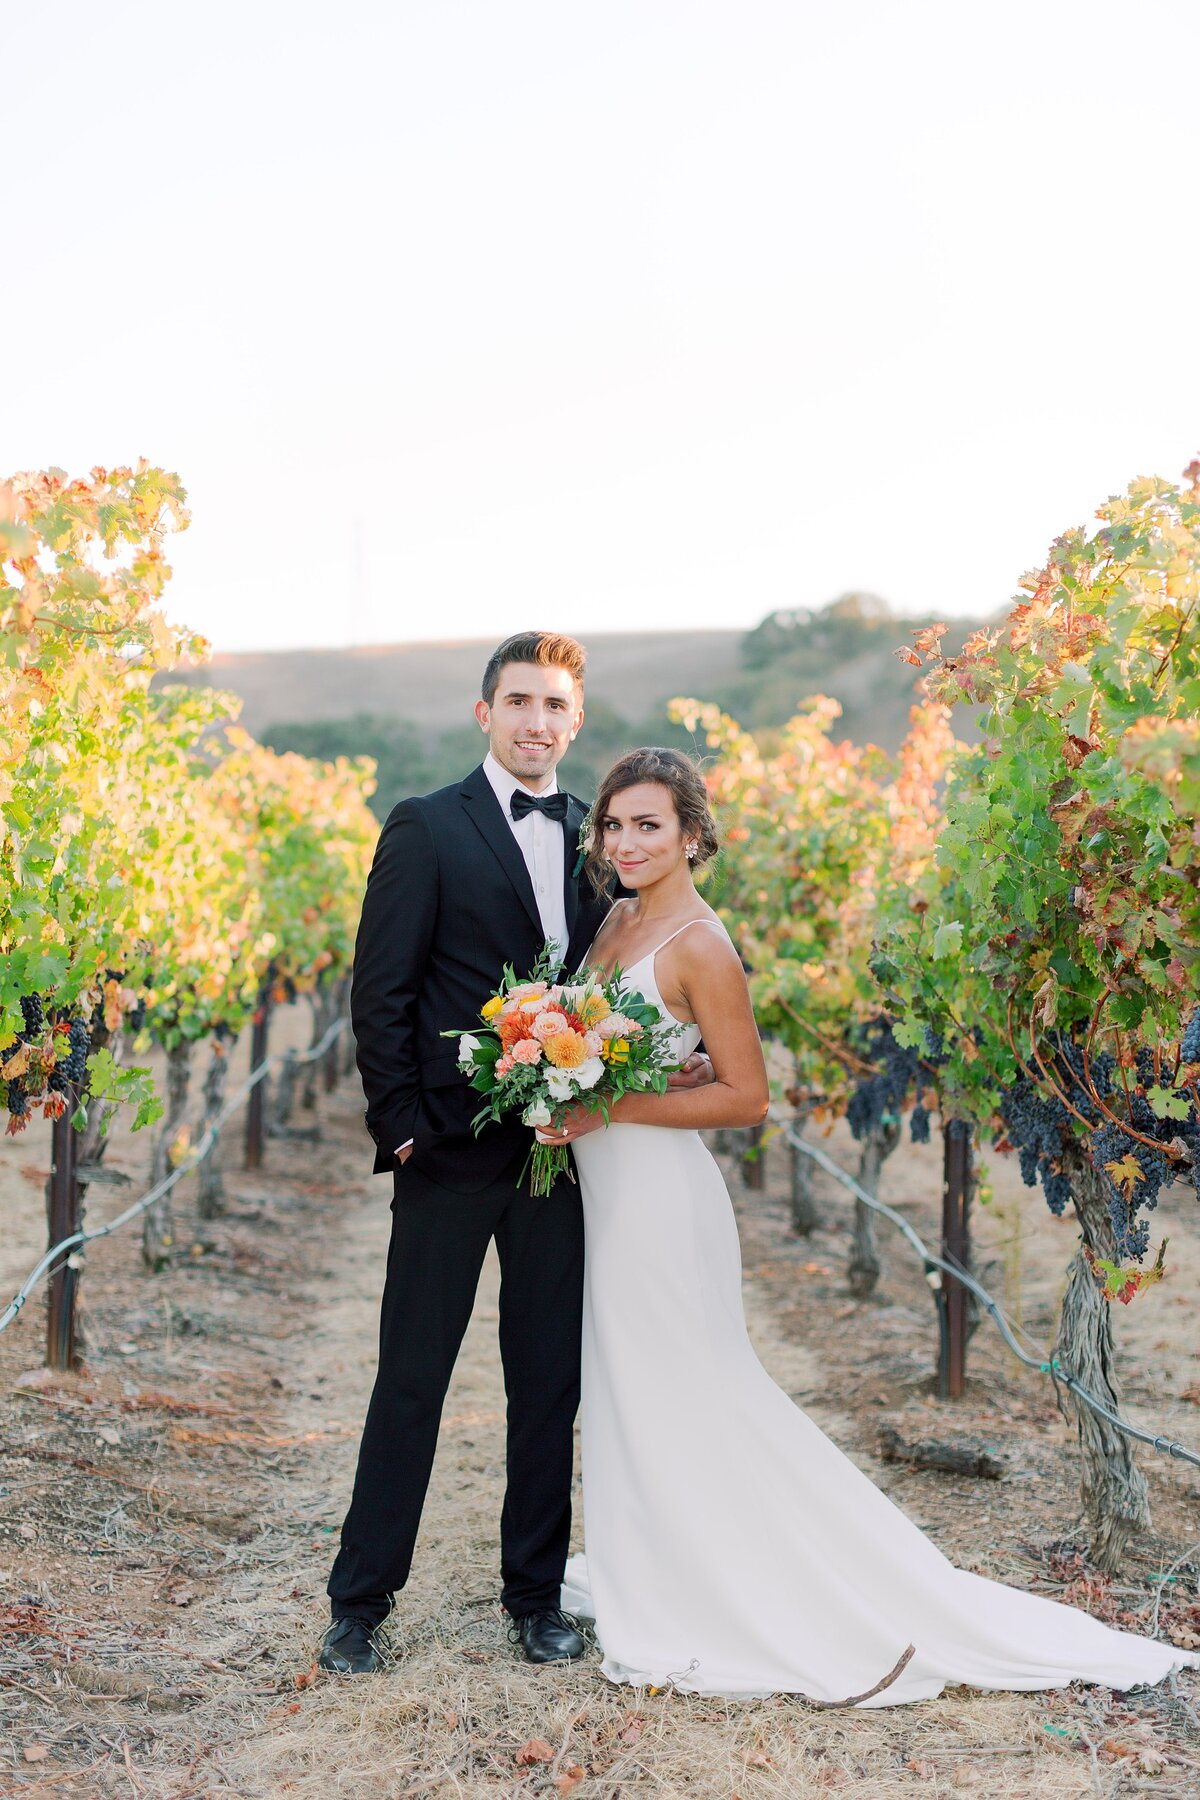 20191020 Modern Elegance Wedding Styled Shoot at Three Steves Winery Livermore_Bethany Picone Photography-163_WEB